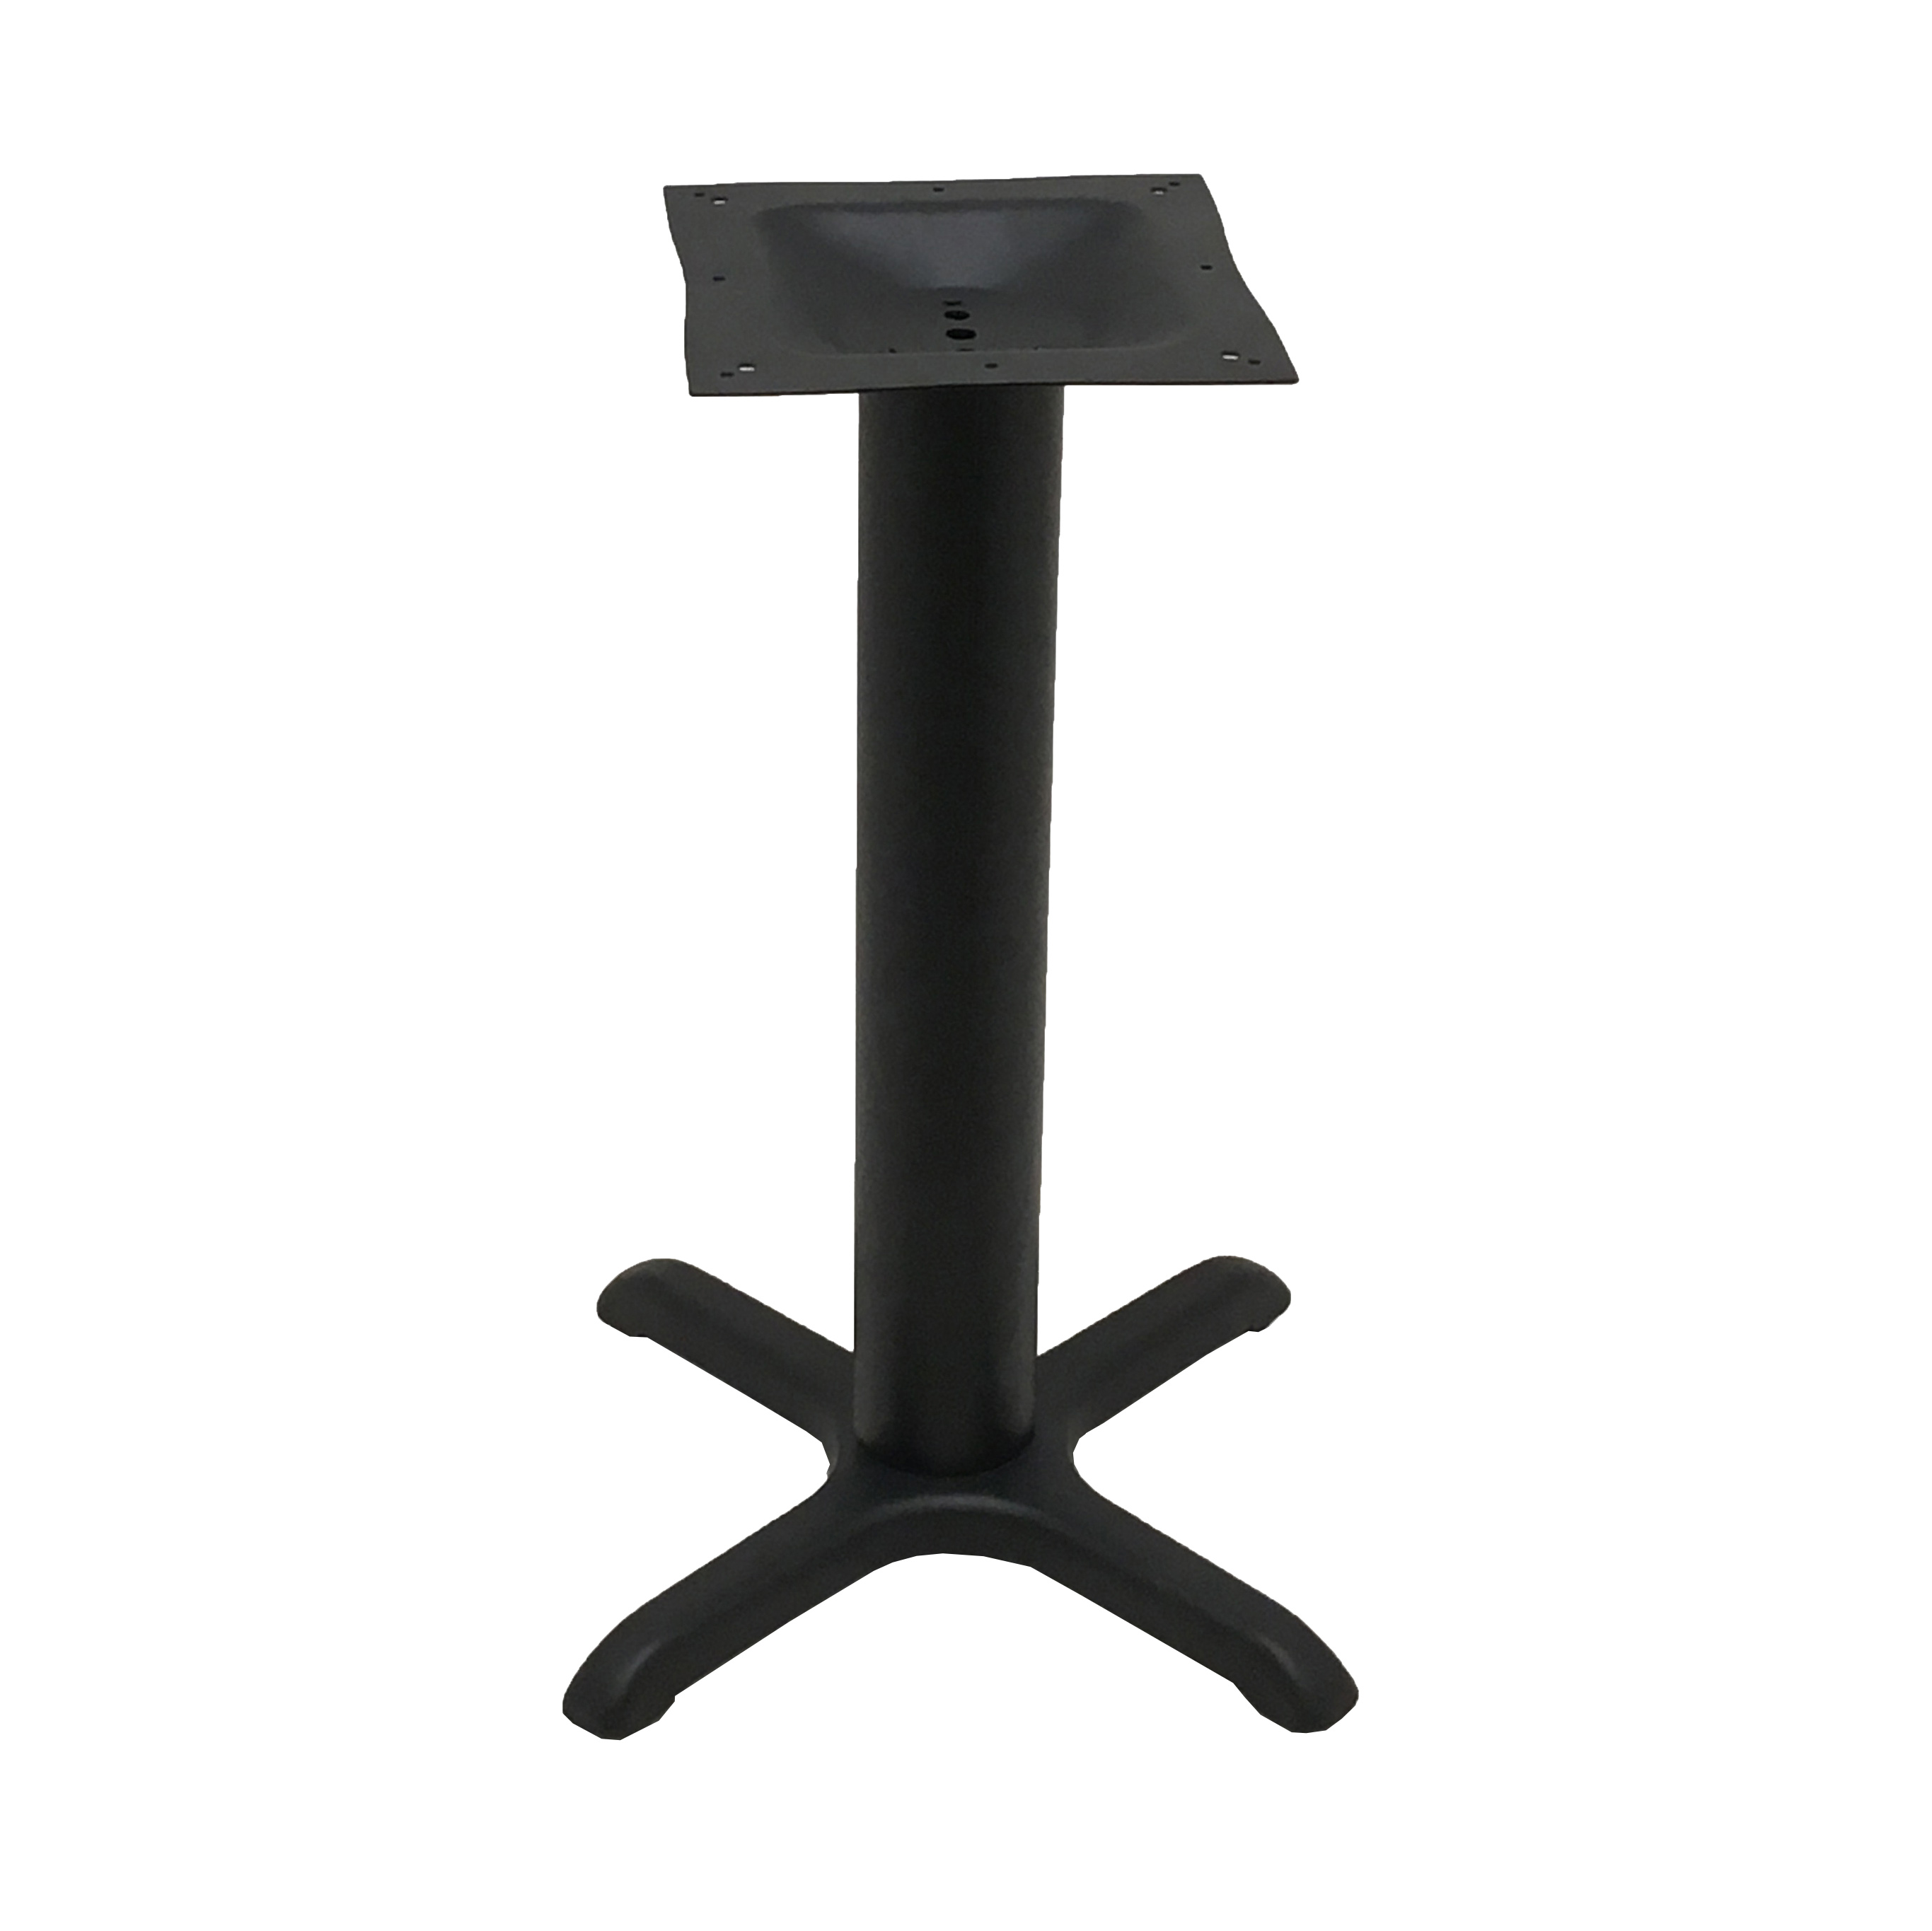 Oak Street B22-4-STD table base, metal